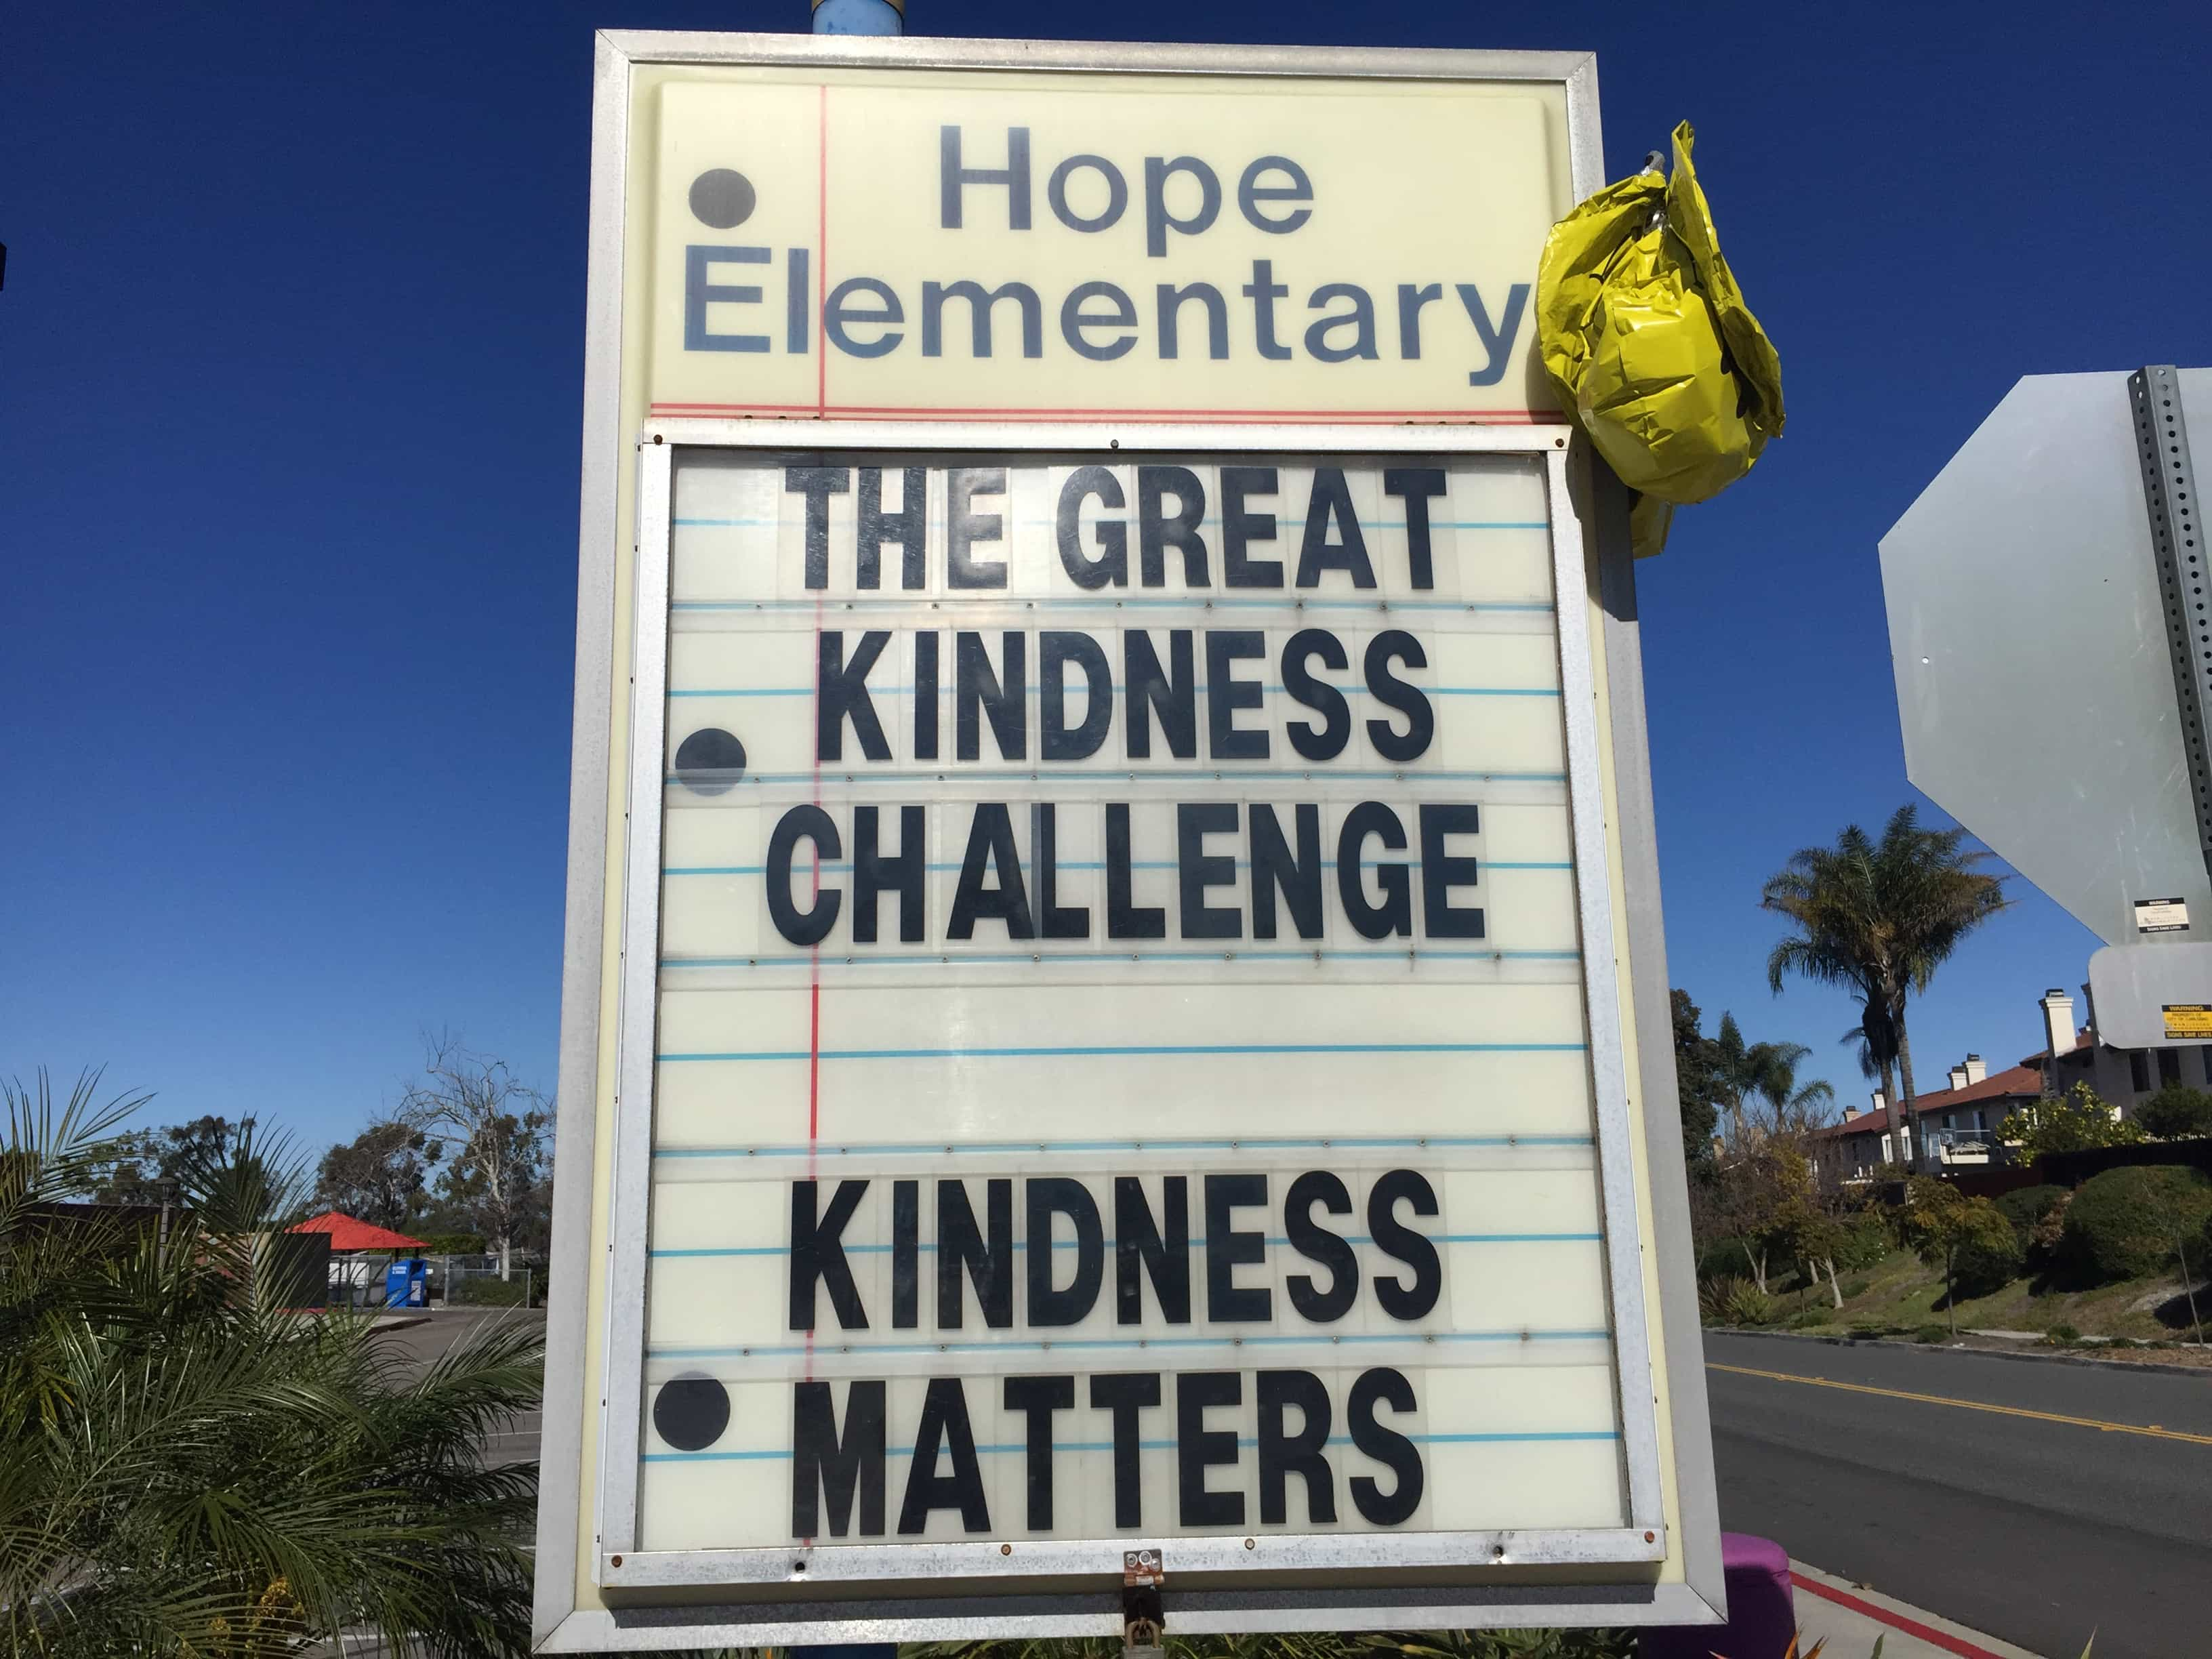 The Great Kindness Challenge 2018 sign in Carlsbad